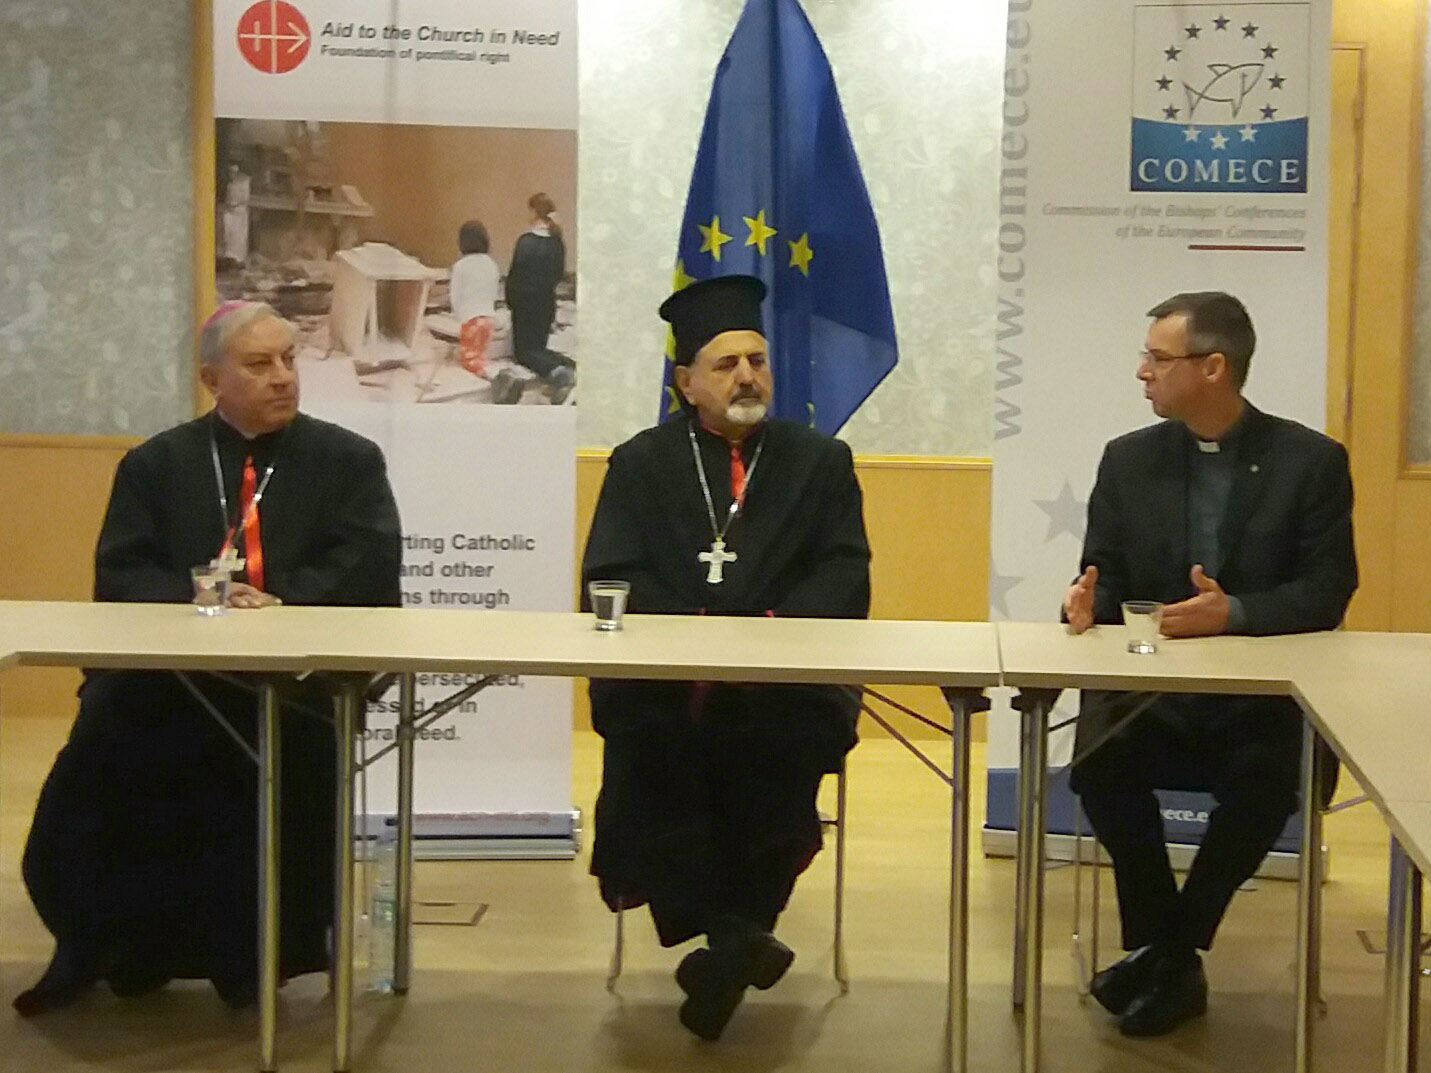 Syriac Catholic Archbishop Antoine Chahda of Aleppo and Syriac Catholic Patriarch Ignatius Younan III and Brother Olivier Poquillon, Secretary General of COMECE) (© Aid to the Church in Need)